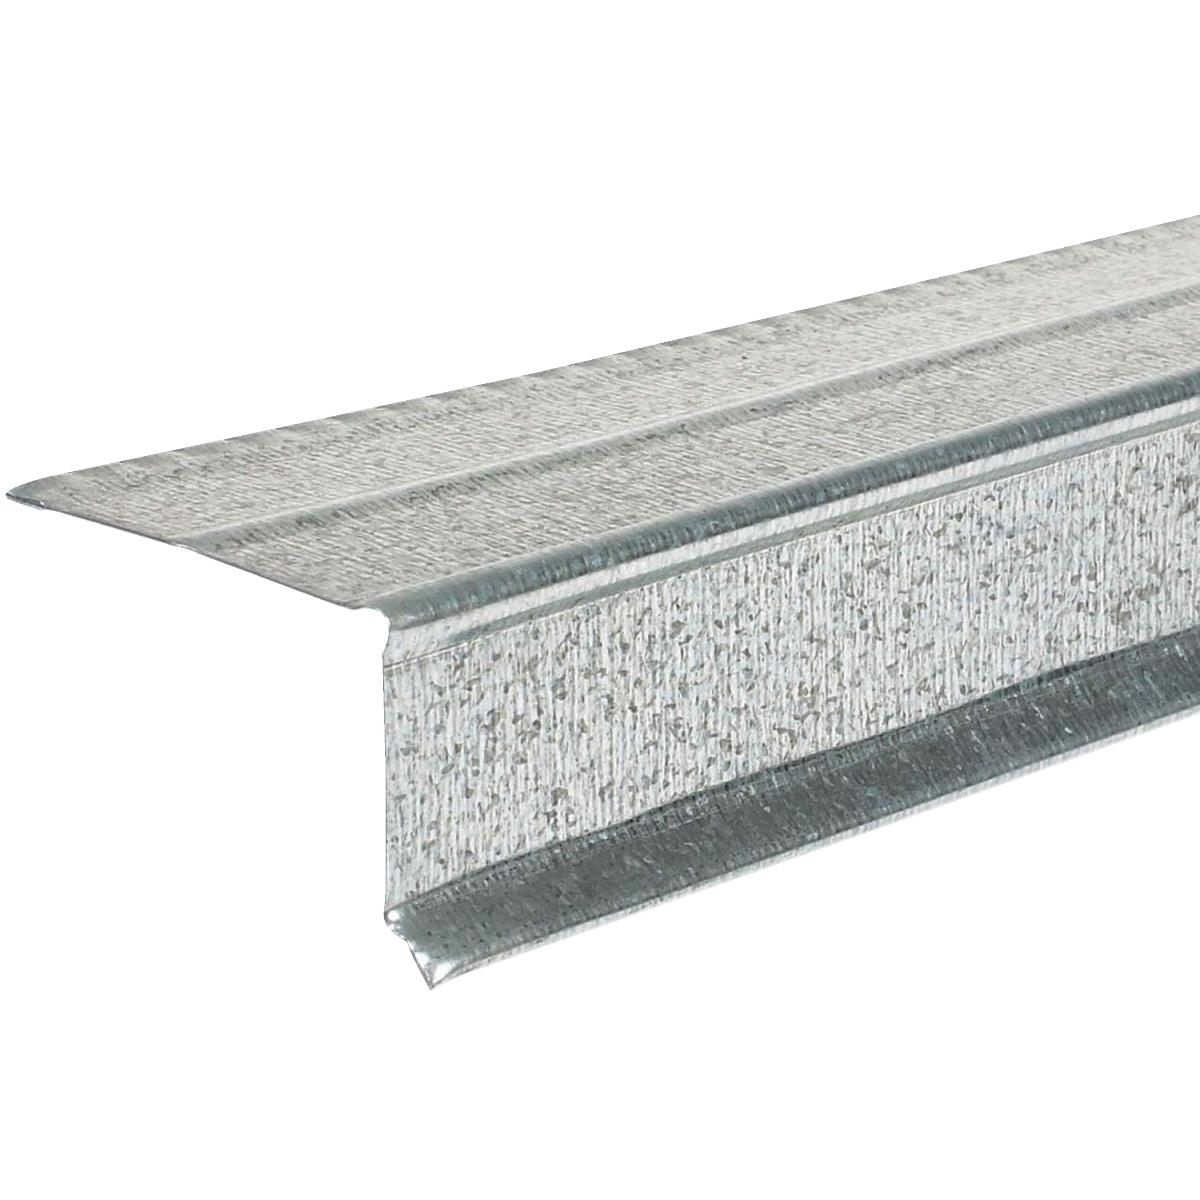 Amerimax Galvanized Style C Roof & Drip Edge Flashing